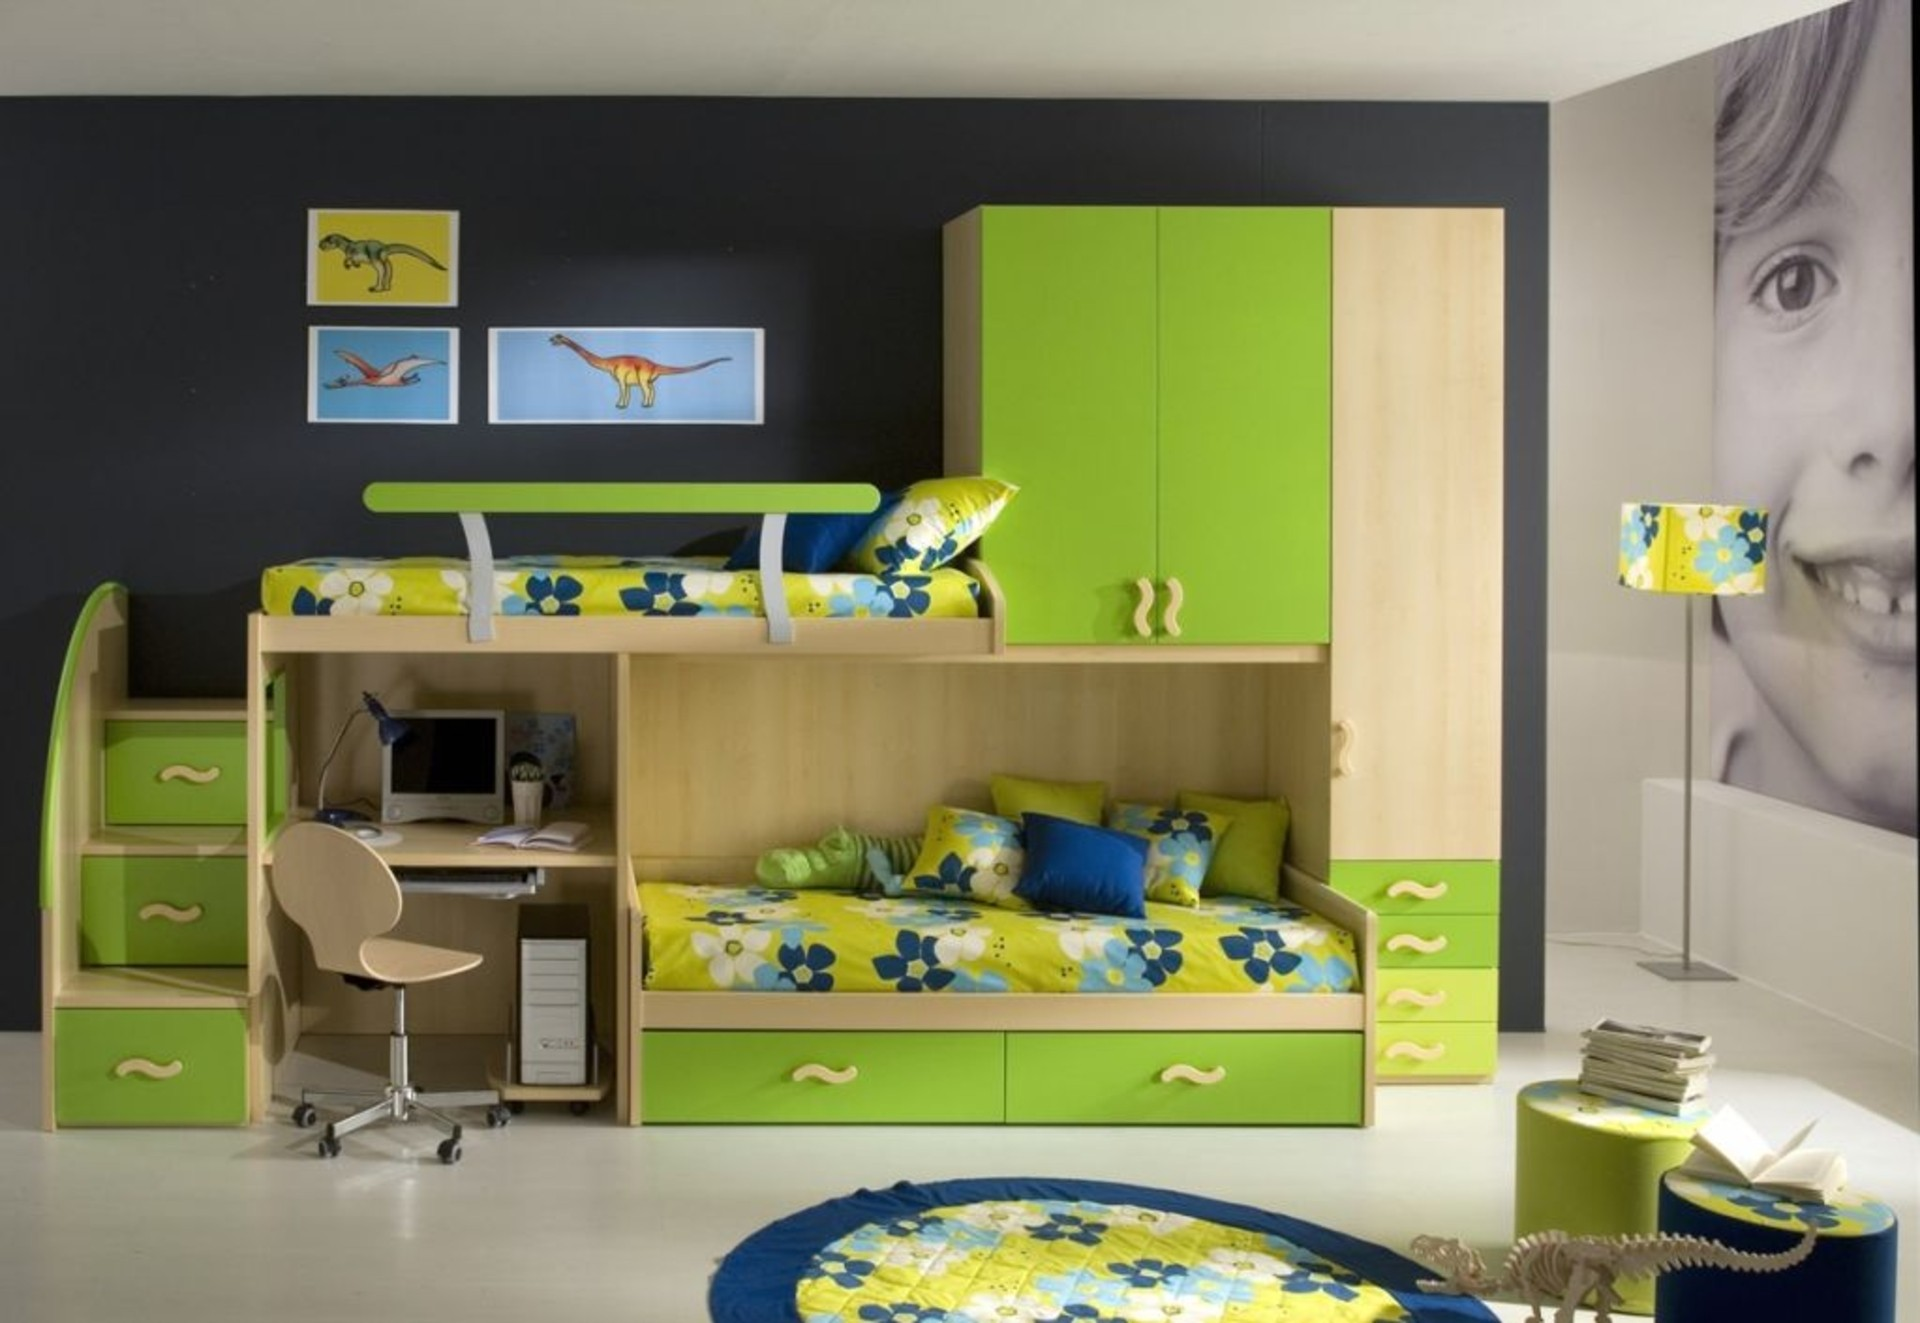 Green Bunk Beds with Storage and Flowery Bedding facing Round Carpet on Grey Concrete Flooring